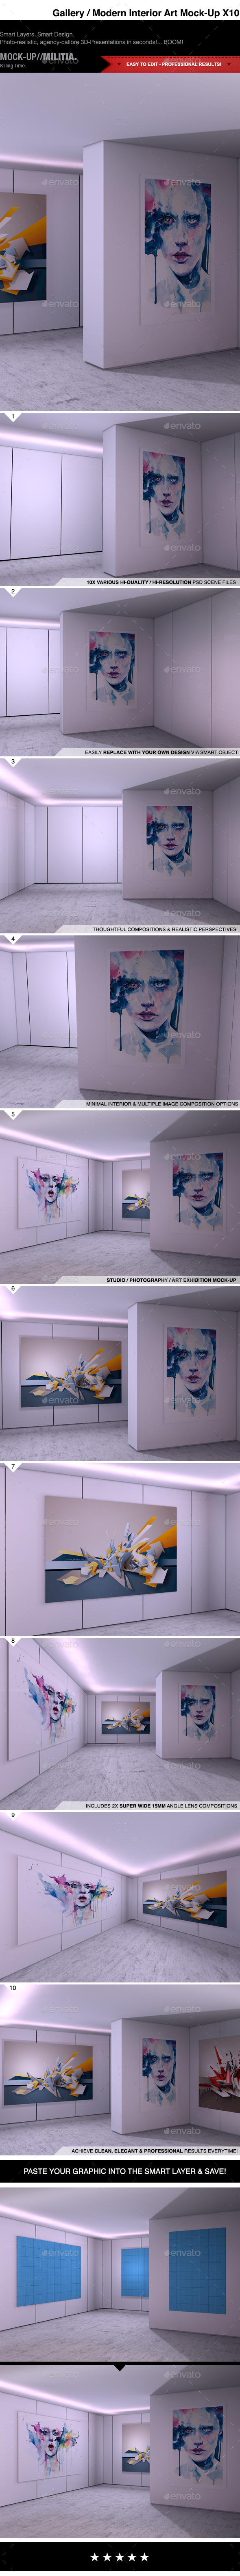 GraphicRiver Modern Interior Photography Art Gallery Mock-Up 10550809